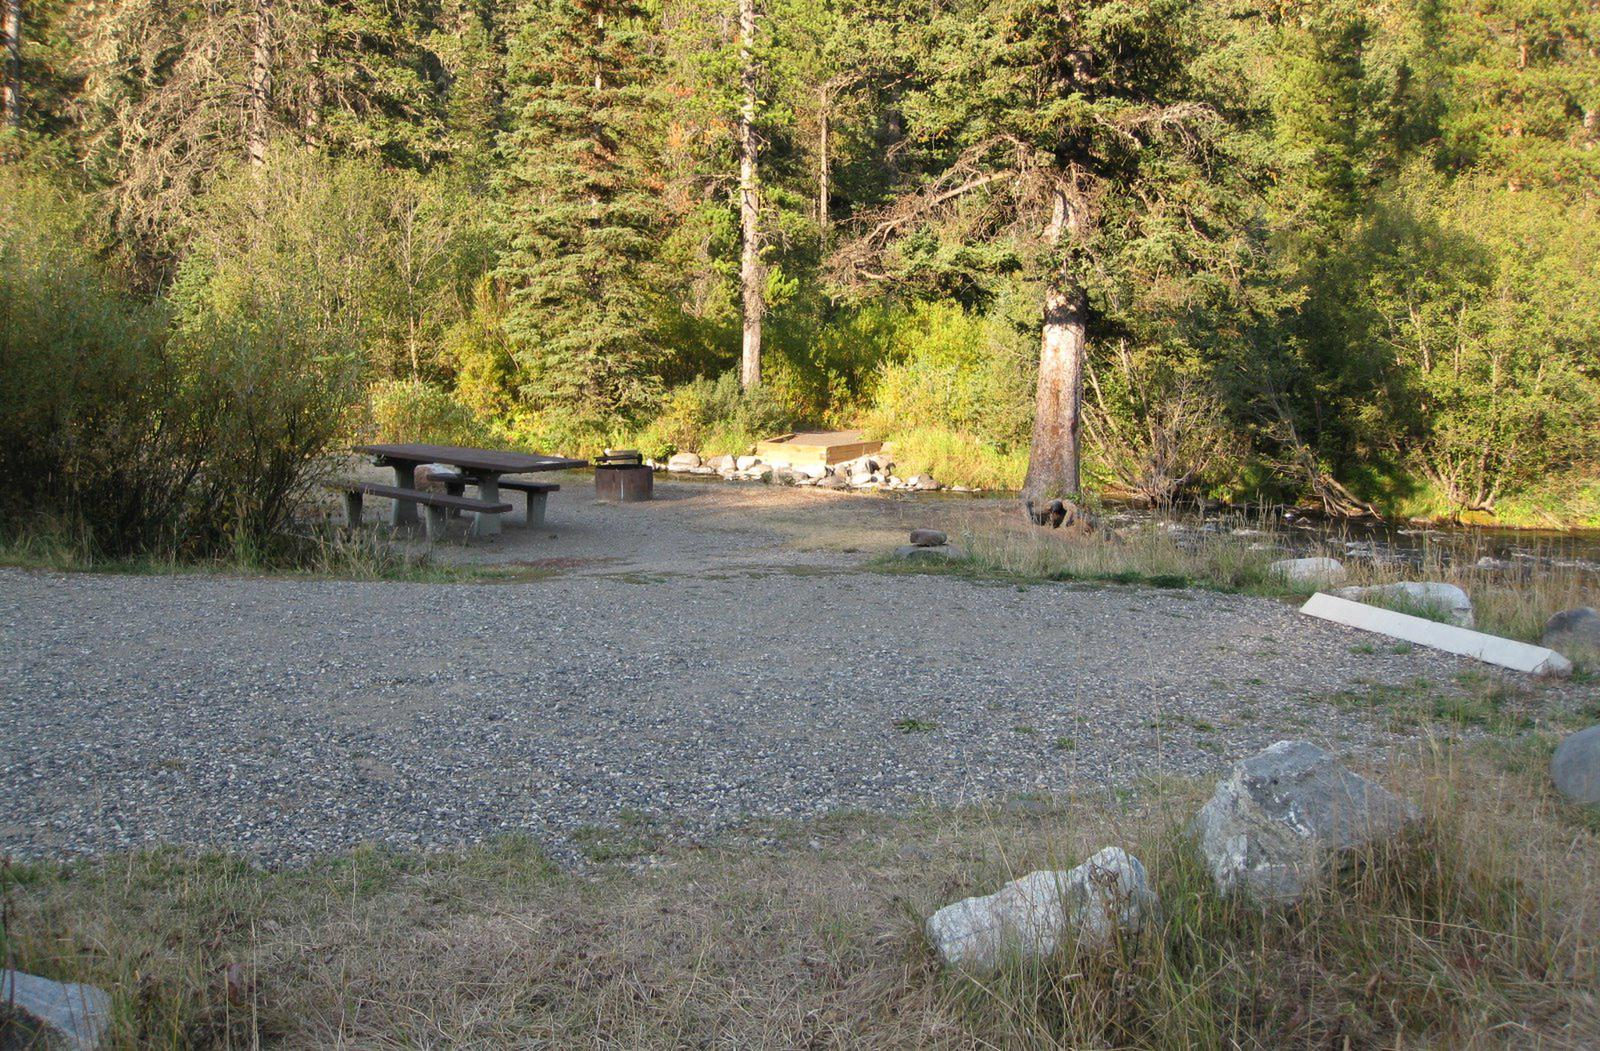 Site 6, campsite surrounded by pine trees, picnic table & fire ringSite 6